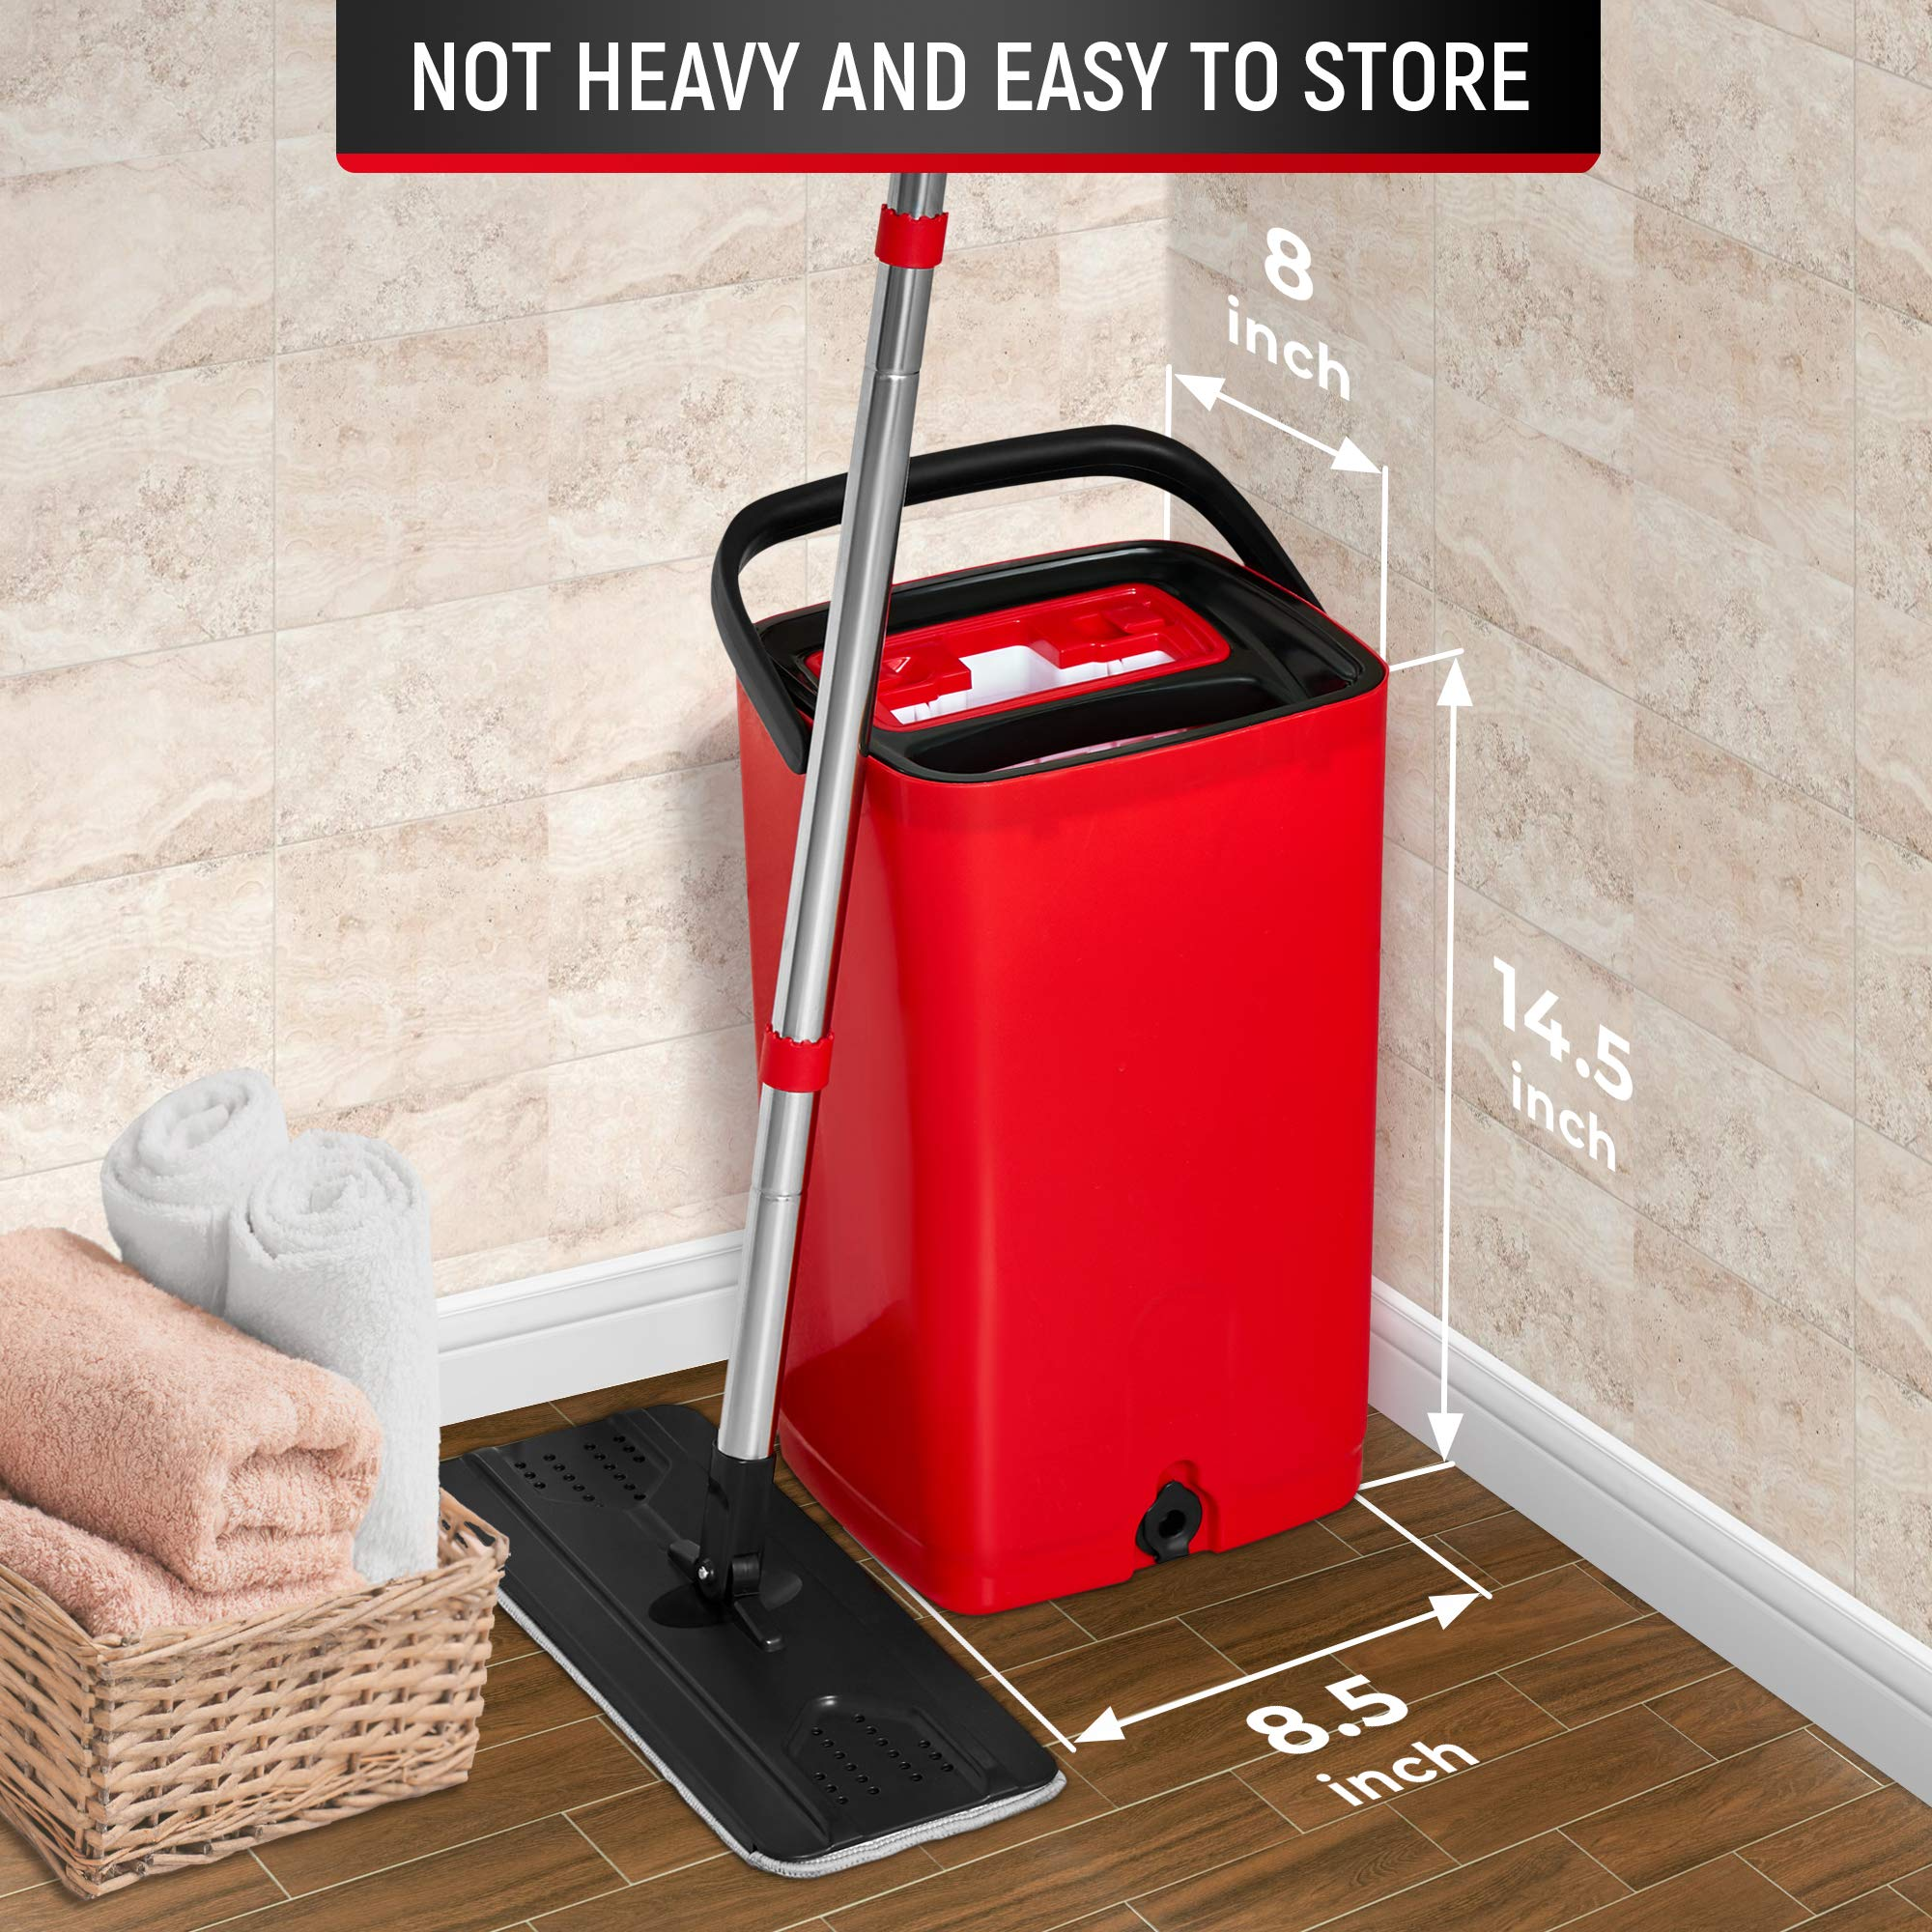 E-Day Smart Flat Mop Bucket with Wringer for Home Kitchen Floor Cleaning - Microfiber Mop System with Bucket and 2 Washable Mop Pads - Dry or Wet Floor Mop Set with Self-Cleaning System - Red by E-Day Smart (Image #2)